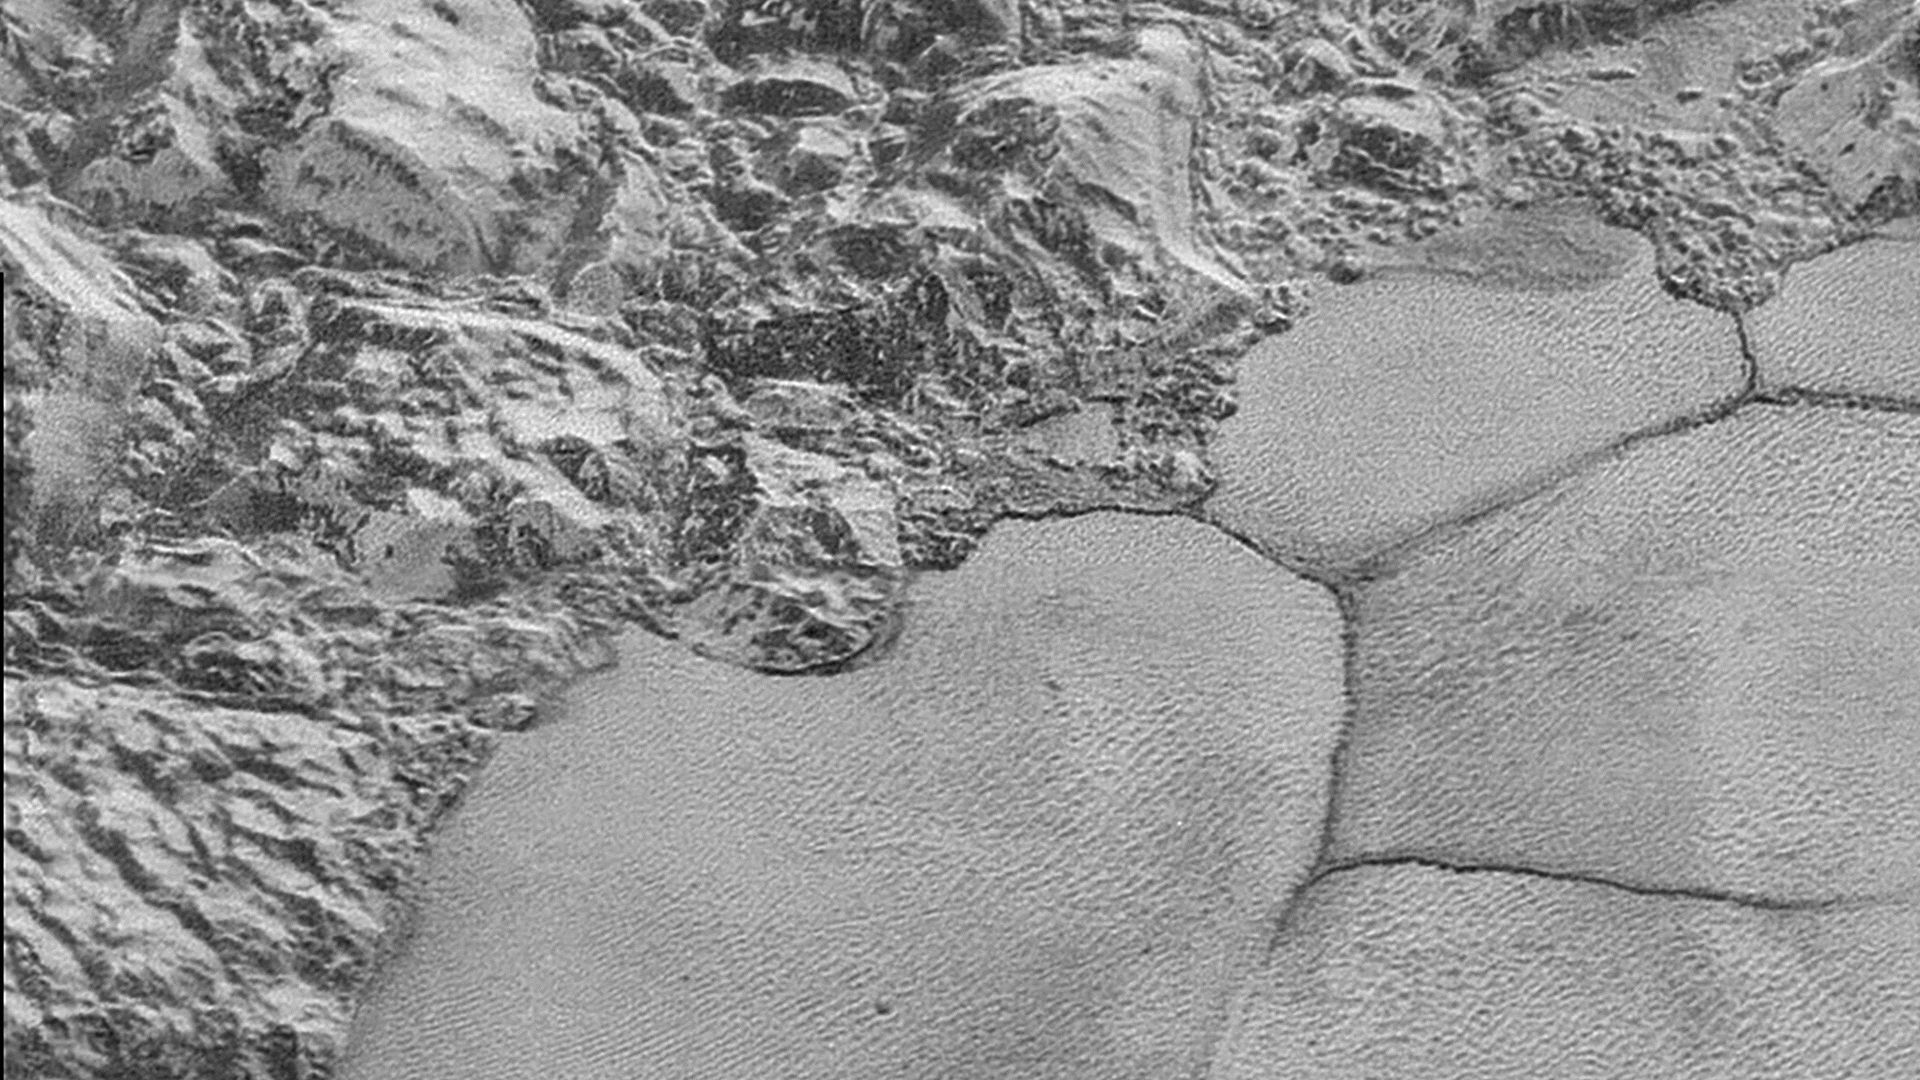 The mountain range on the edge of the Sputnik Planitia ice plain, with dune formations in the bottom half of the picture.